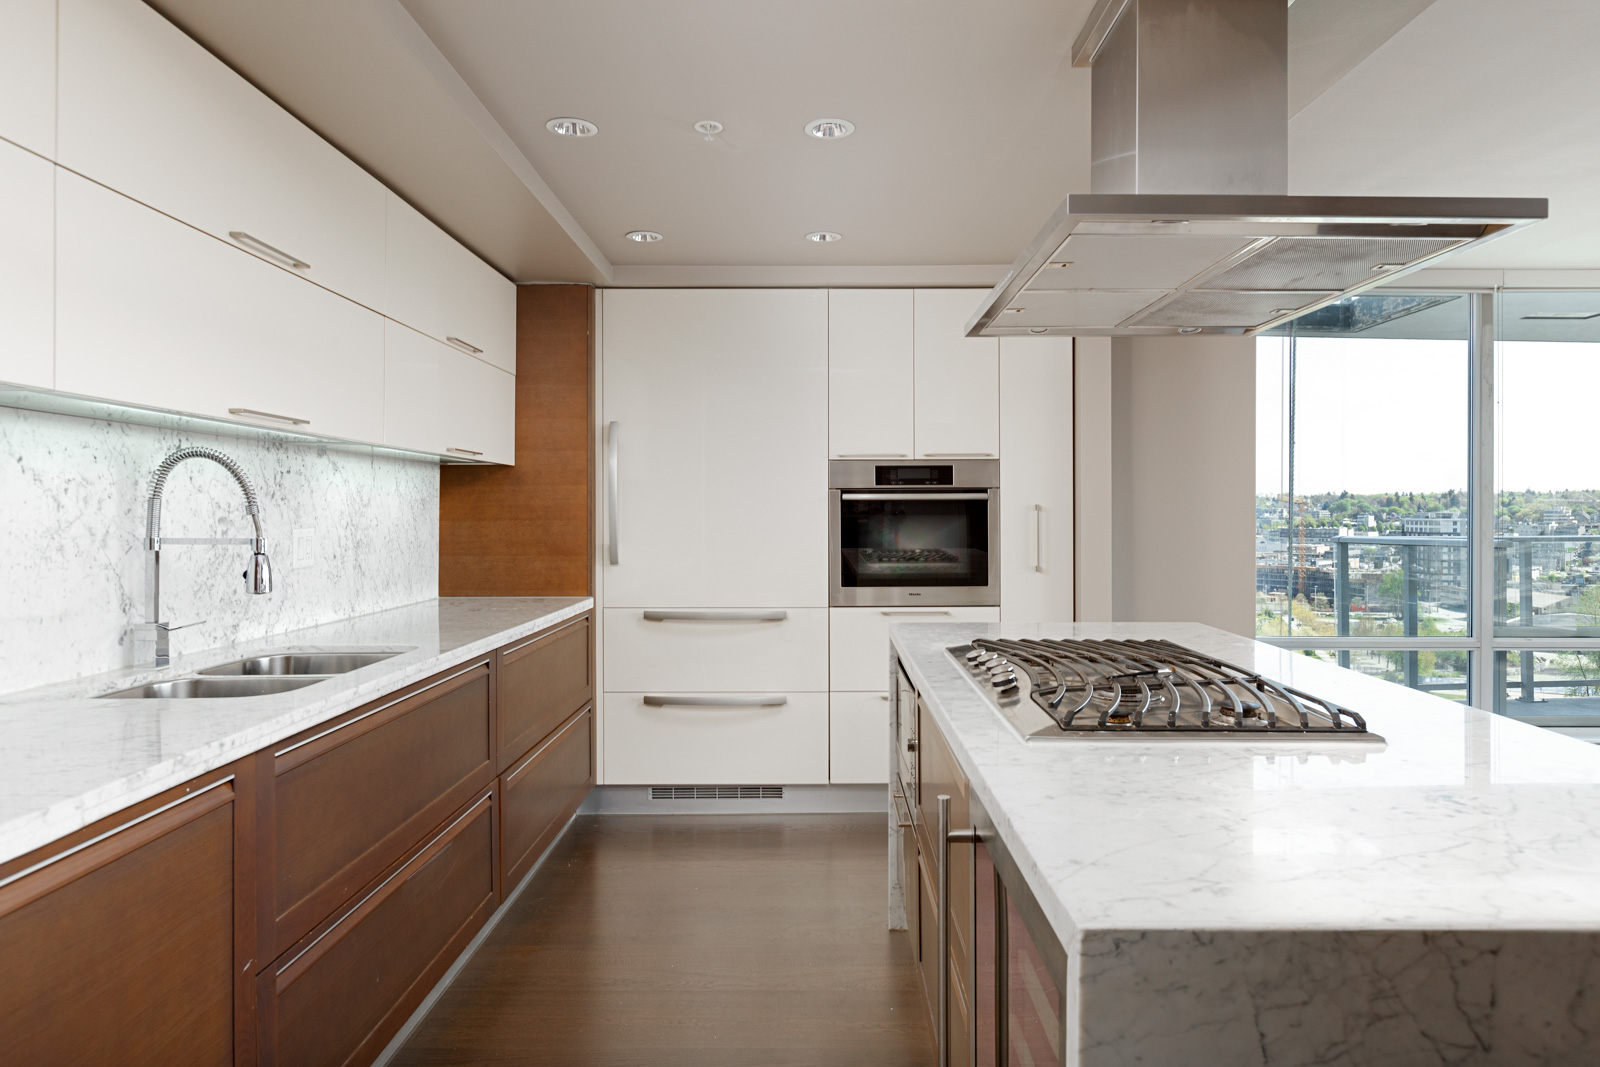 Kitchen with stainless steel appliances and marble counter top inside luxury Vancouver condo.